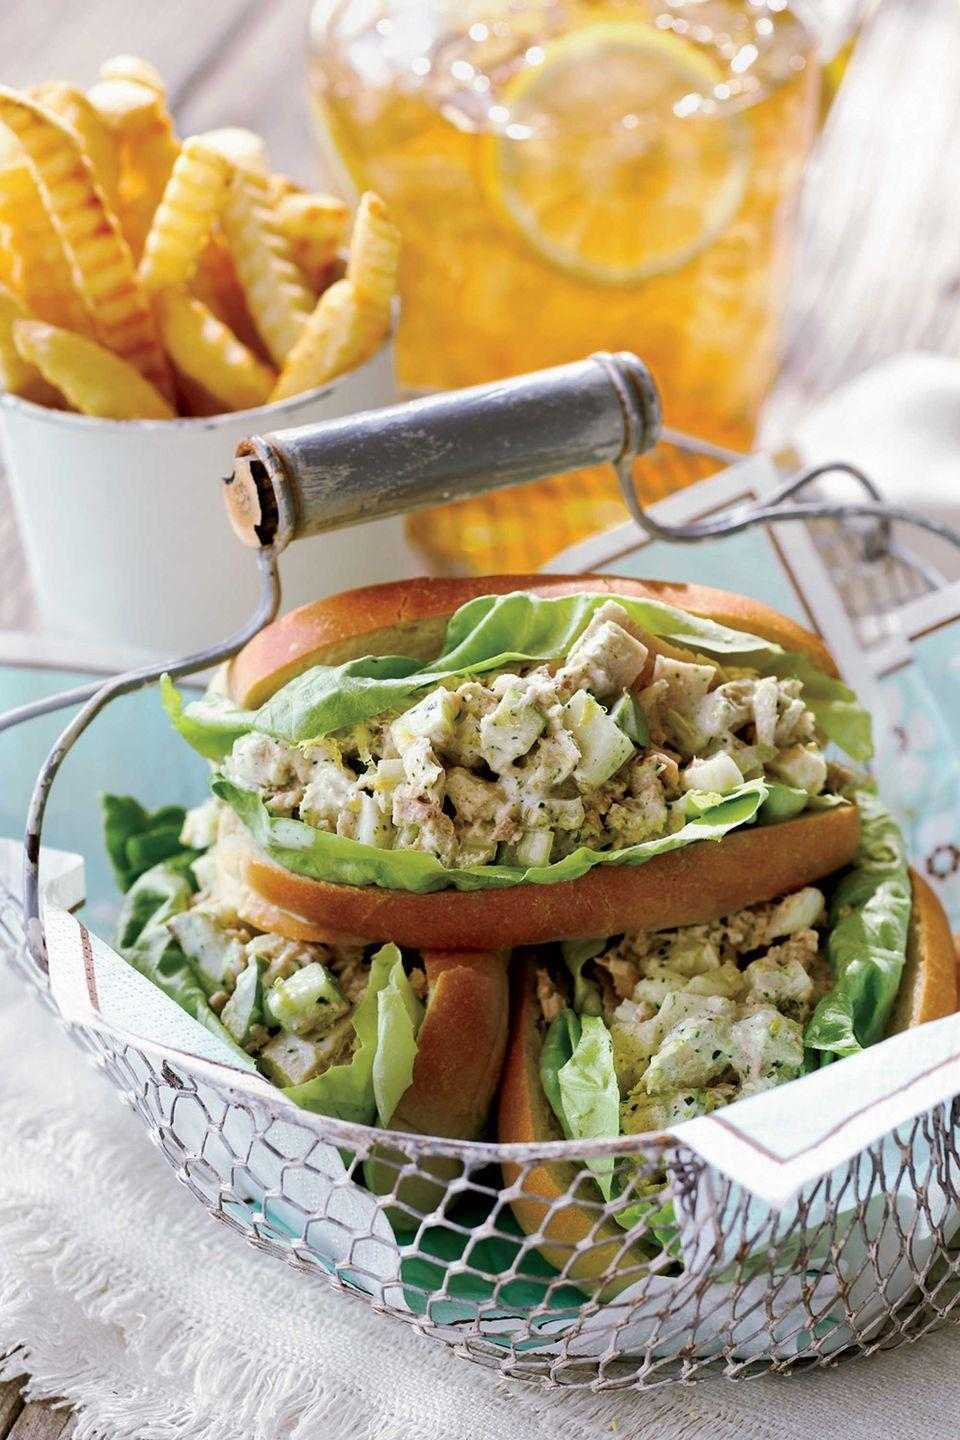 "<p>This sandwich bursts with fresh flavors, from tart Granny Smith apple to crisp, spicy fennel.</p><p><strong><a href=""https://www.countryliving.com/food-drinks/recipes/a1963/garden-tuna-salad-sandwich-clv0707/"" rel=""nofollow noopener"" target=""_blank"" data-ylk=""slk:Get the recipe"" class=""link rapid-noclick-resp"">Get the recipe</a>.</strong></p>"